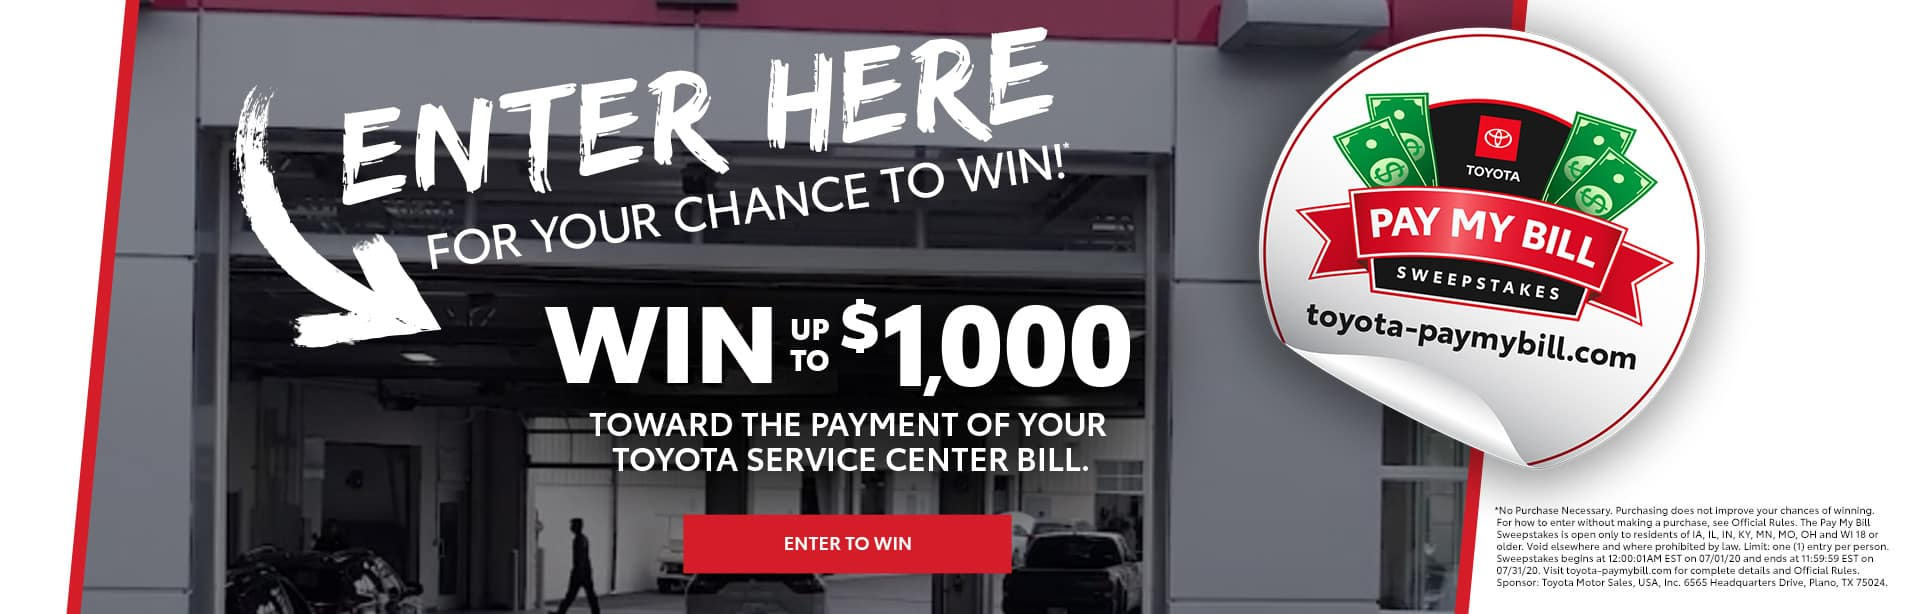 Schaumburg Toyota Pay My Bill Sweepstakes